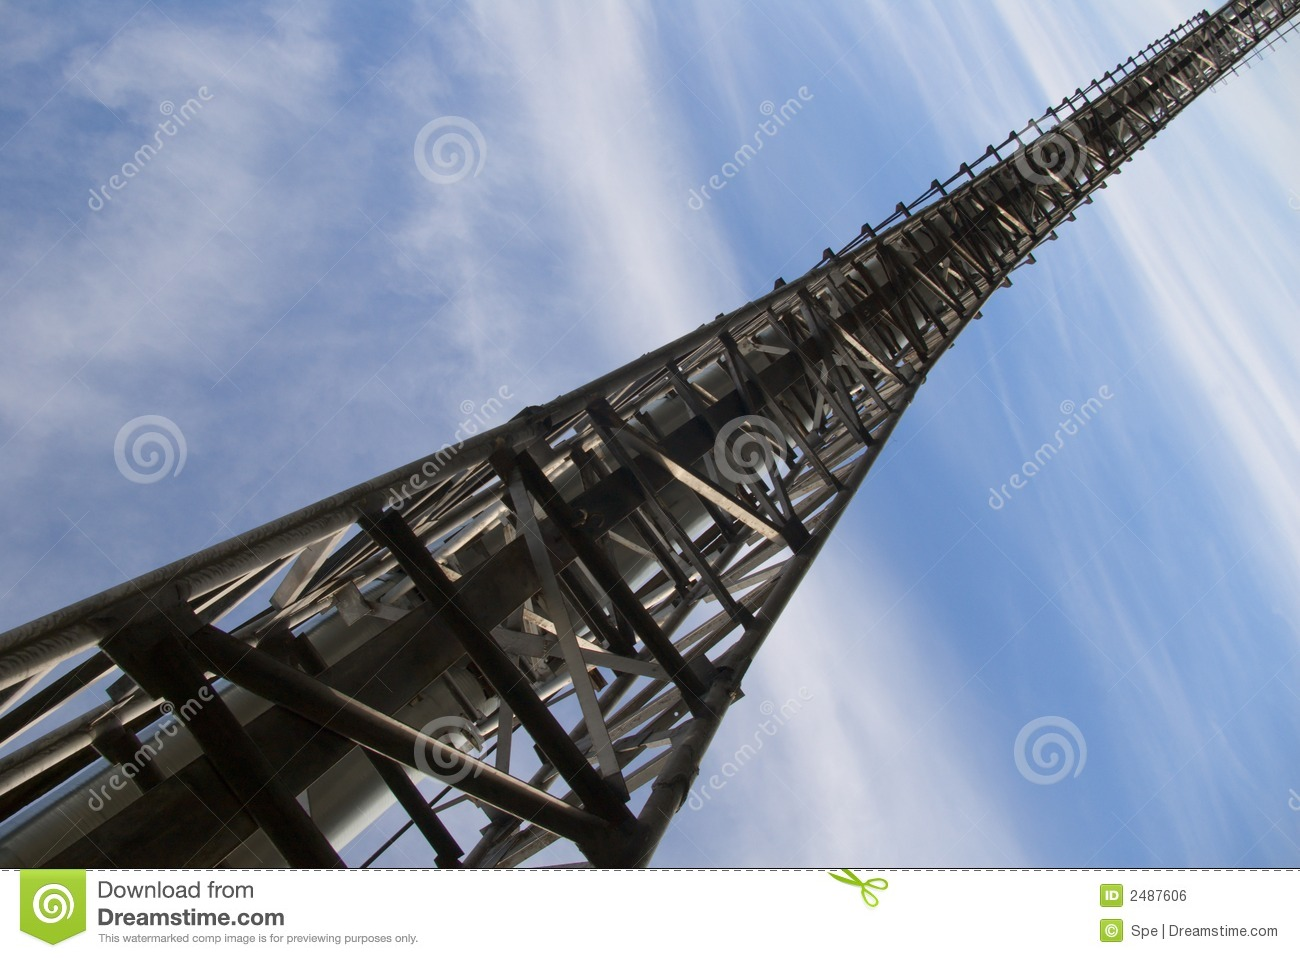 Industrial bridge stock photo. Image of girder, modern ...